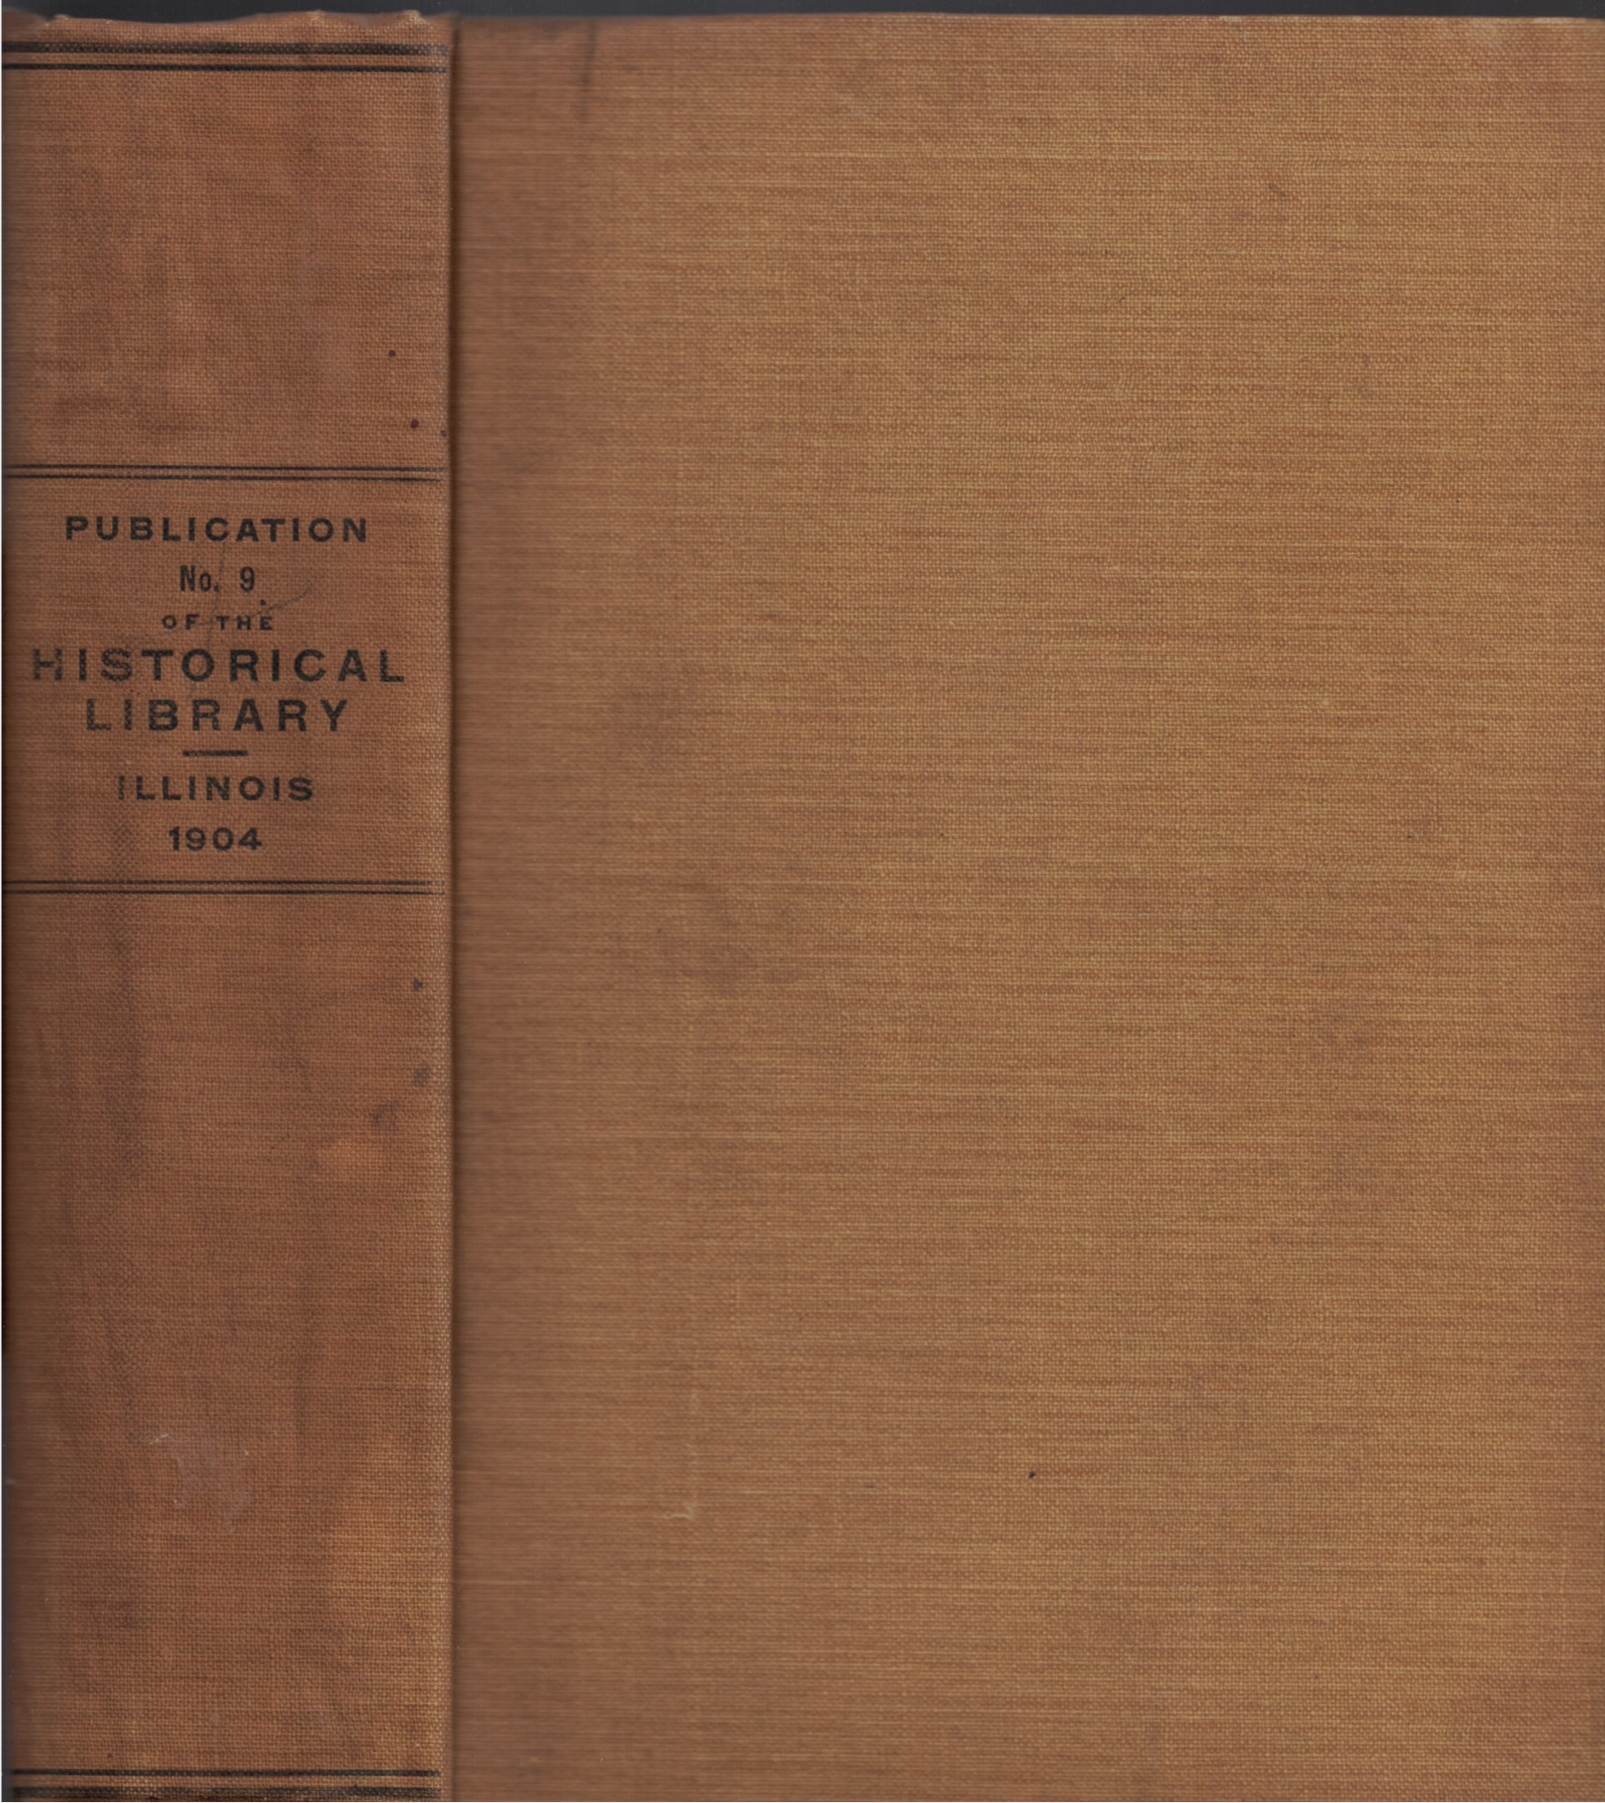 Image for Transactions of the Illinois State Historical Society for the Year 1904; Fifth Annual Meeting of the Society, Bloomington, January 27, 28 and 29, 1904: Publication No. 9 of the Illinois State Historical Library